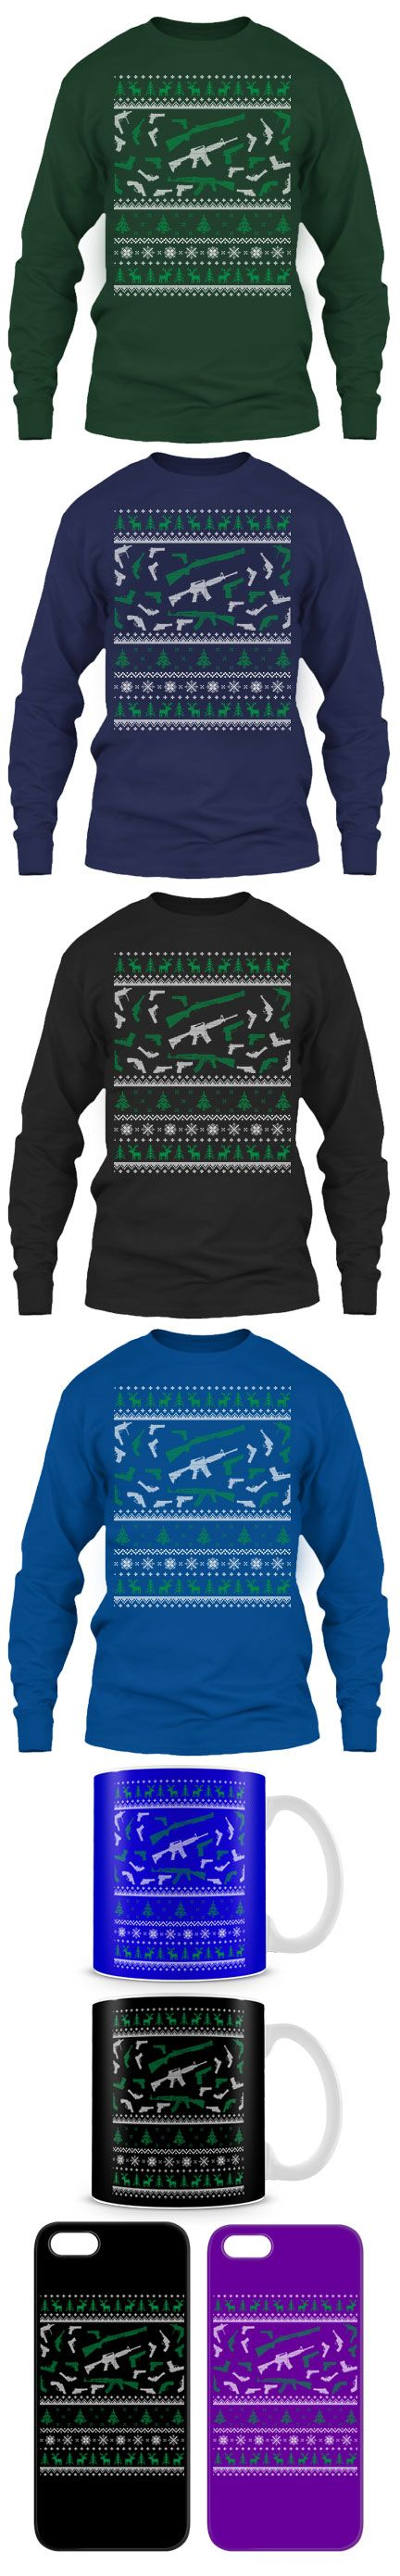 Guns Ugly Christmas Sweater! Click The Image To Buy It Now or Tag Someone You Want To Buy This For.